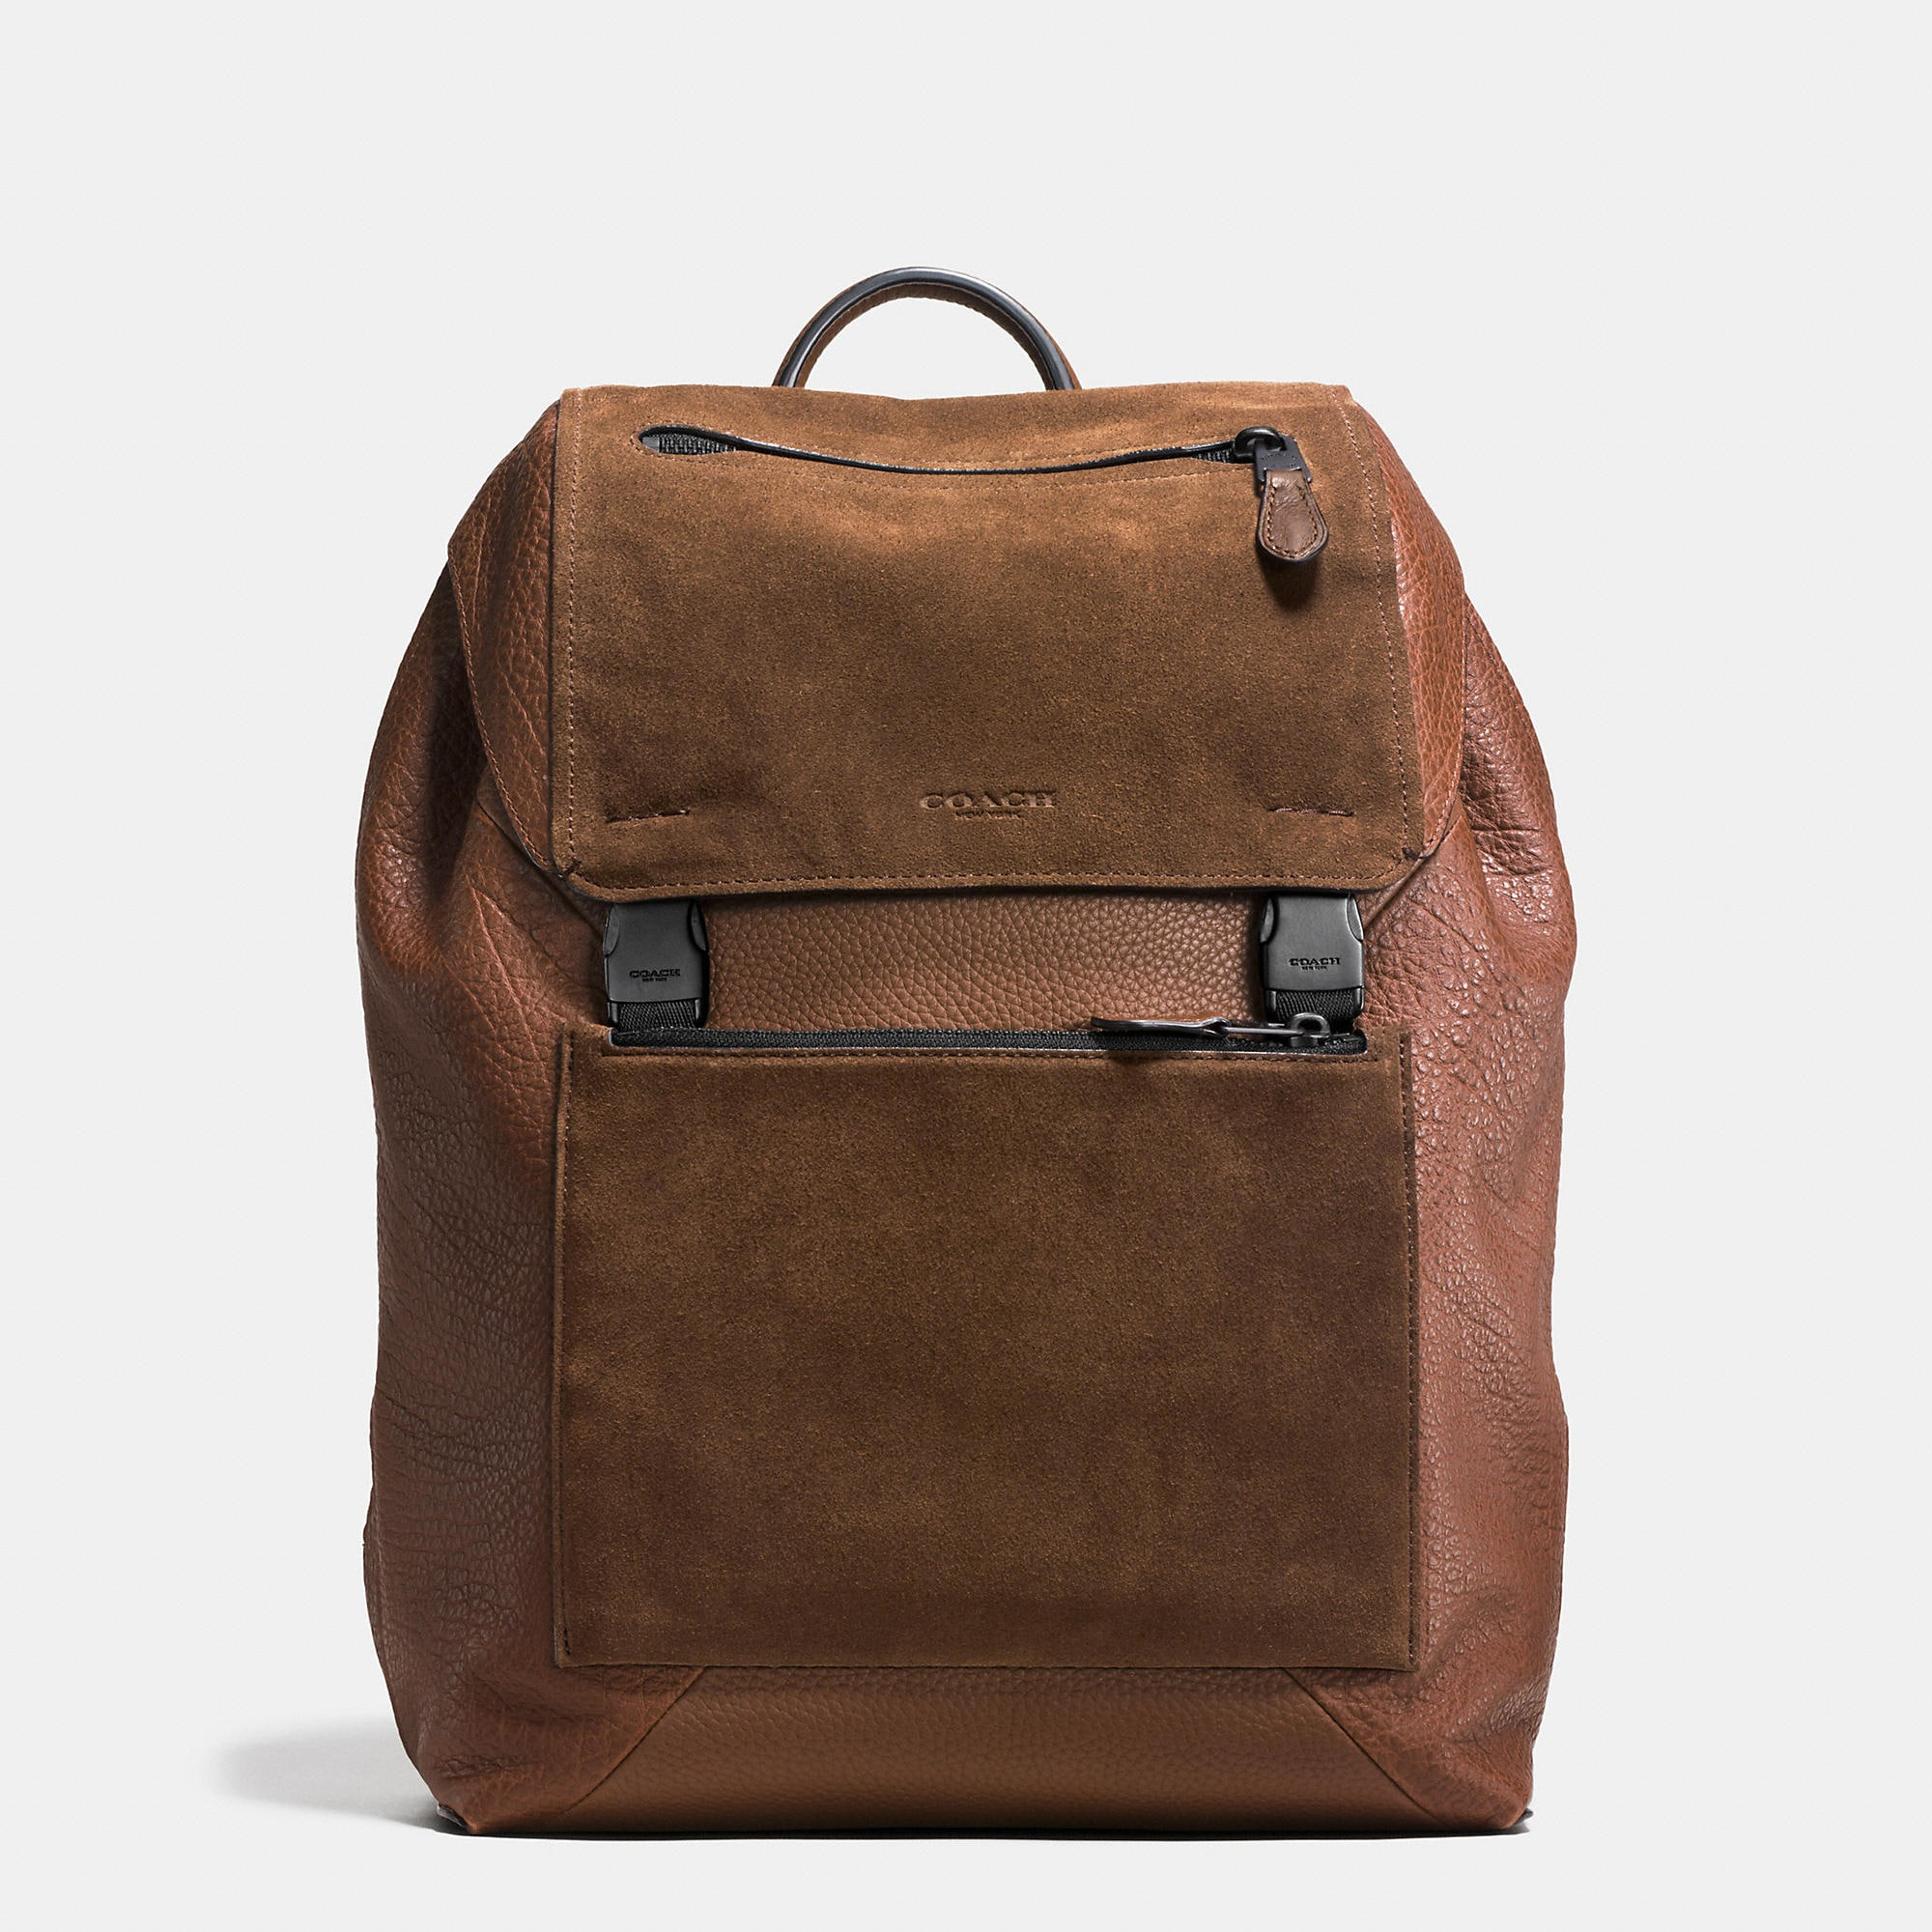 Coach Manhattan Backpack In Patchwork Leather